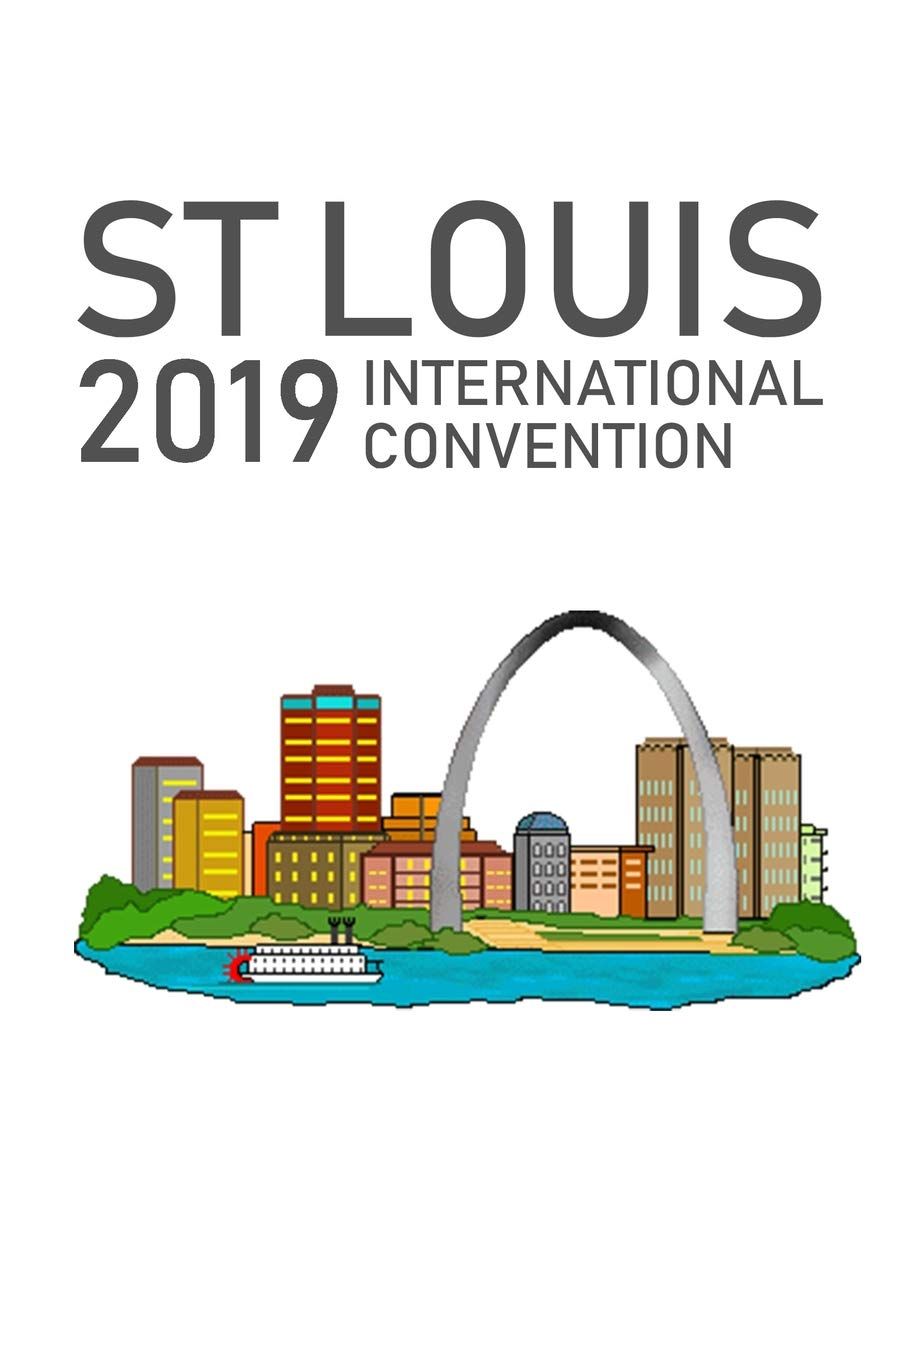 St Louis 2019 International Convention: JW Gifts